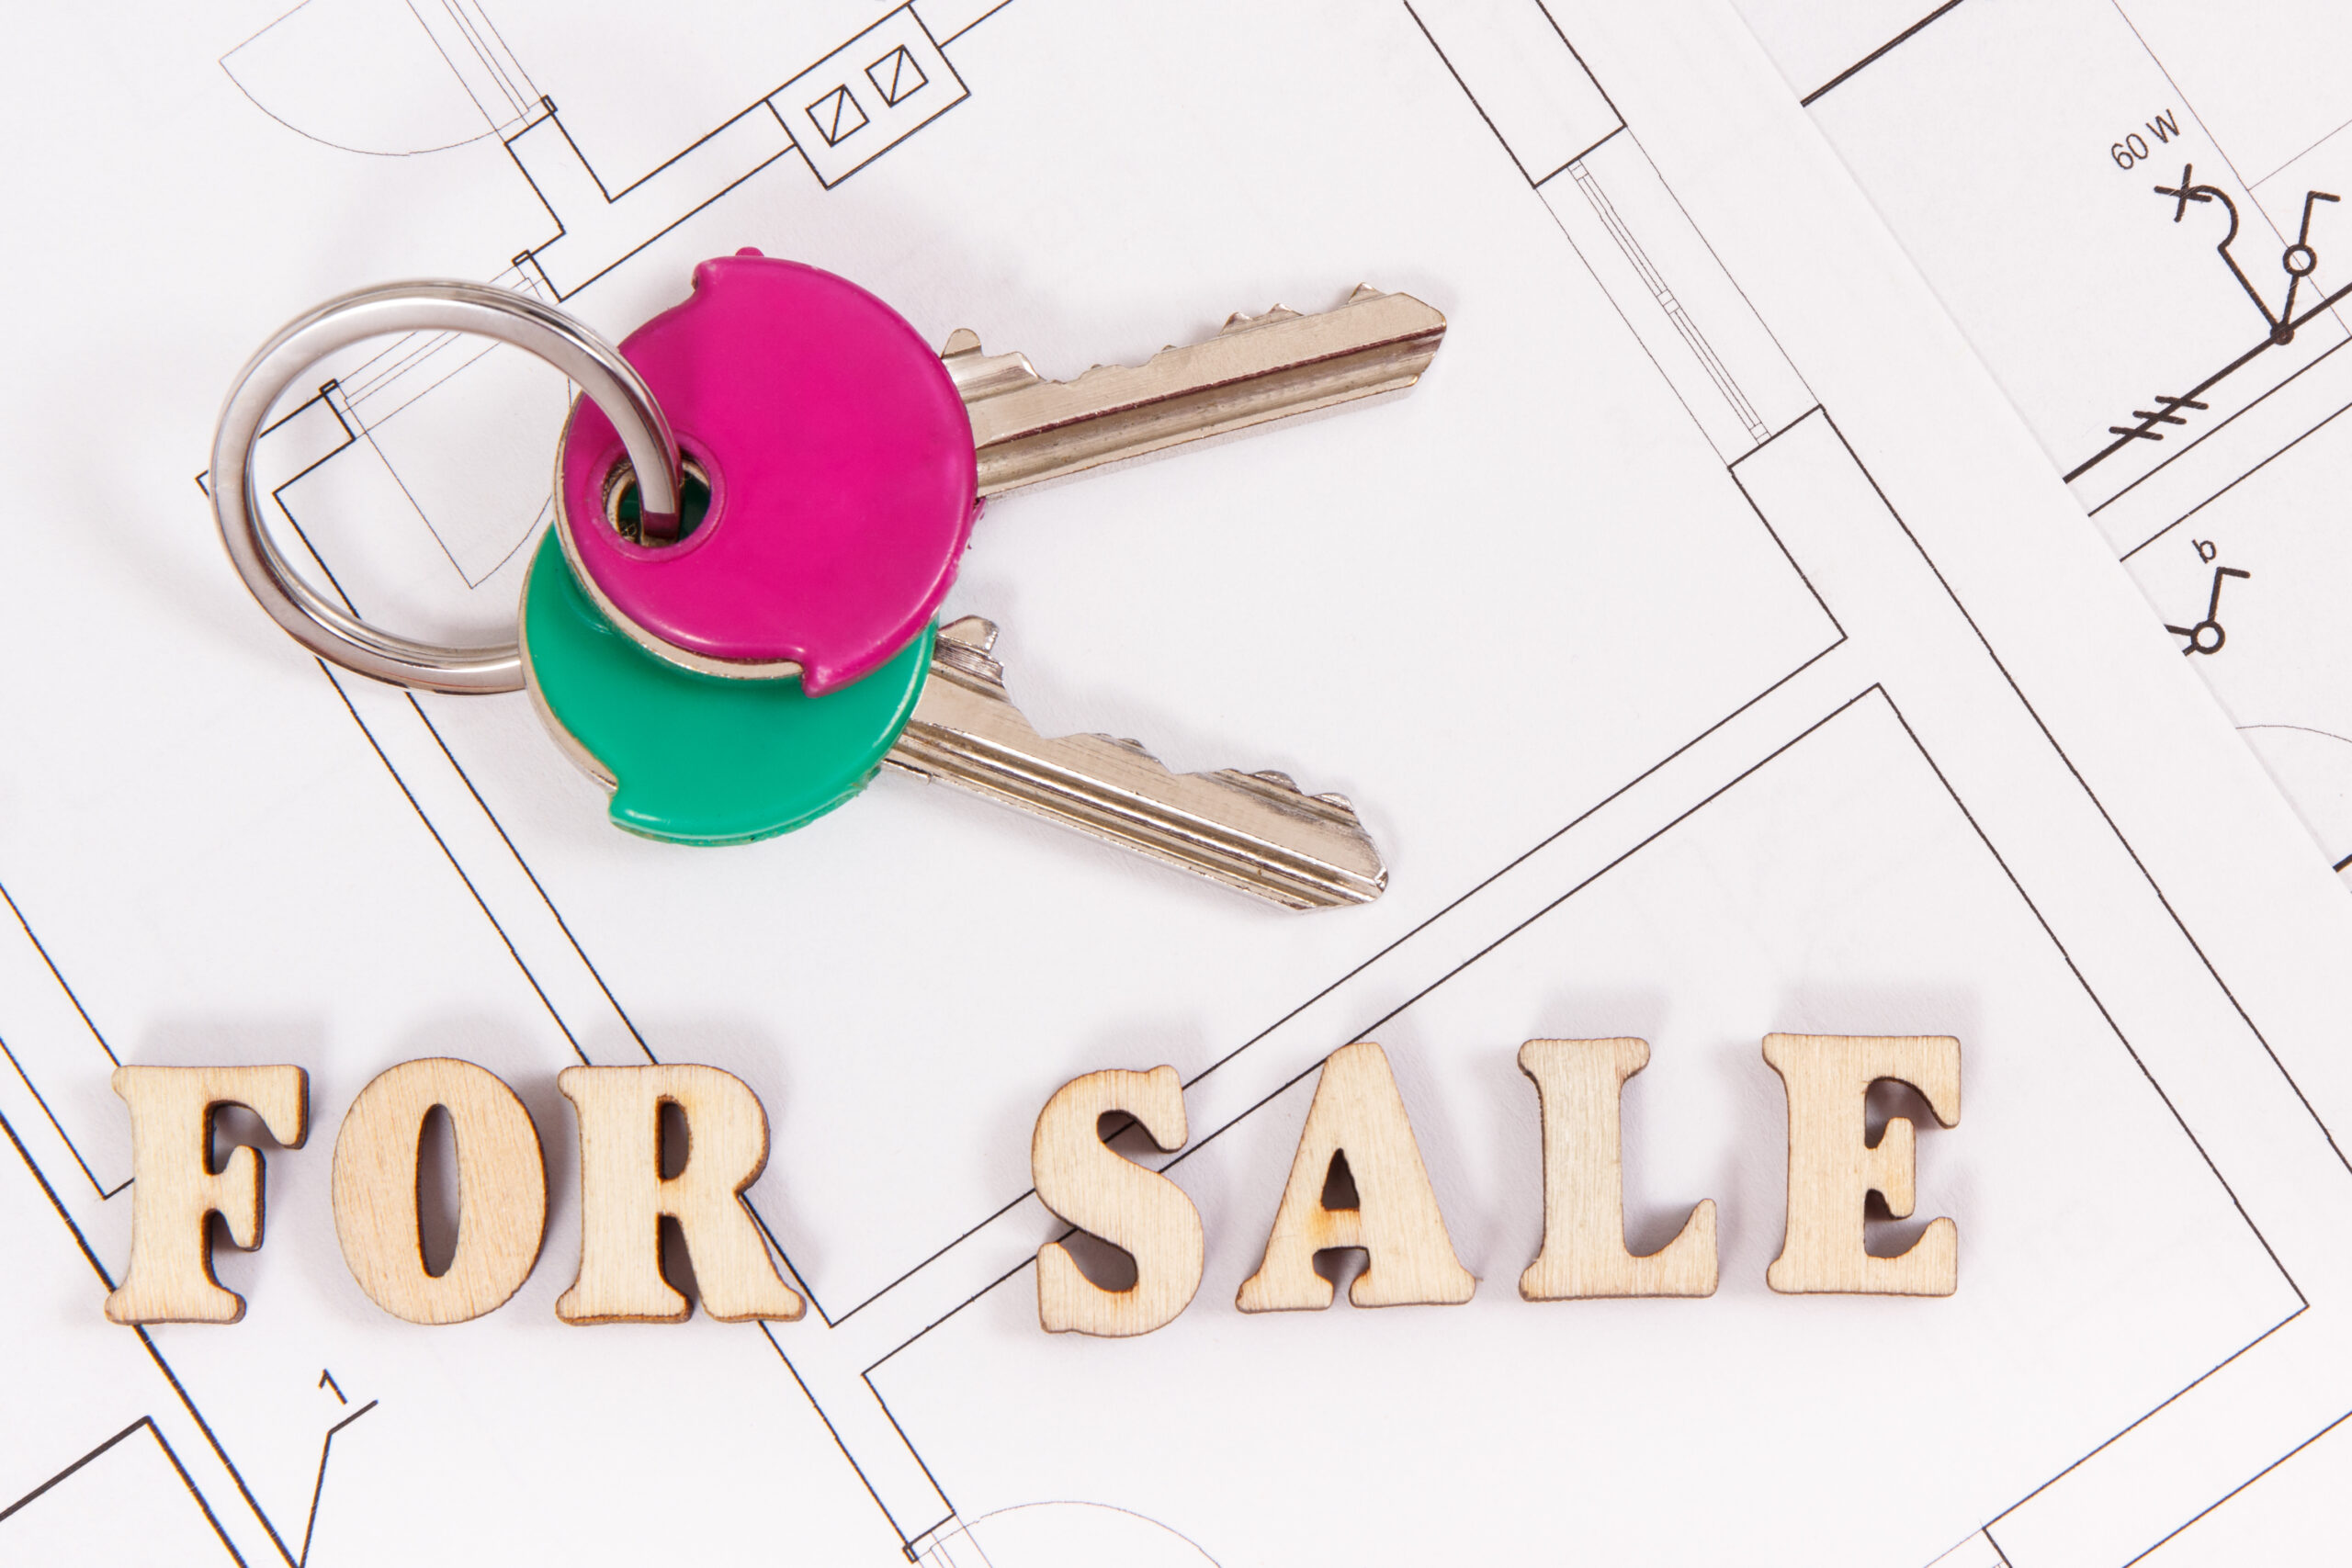 Home keys with inscription for sale on construction housing plan, concept of selling or buying house